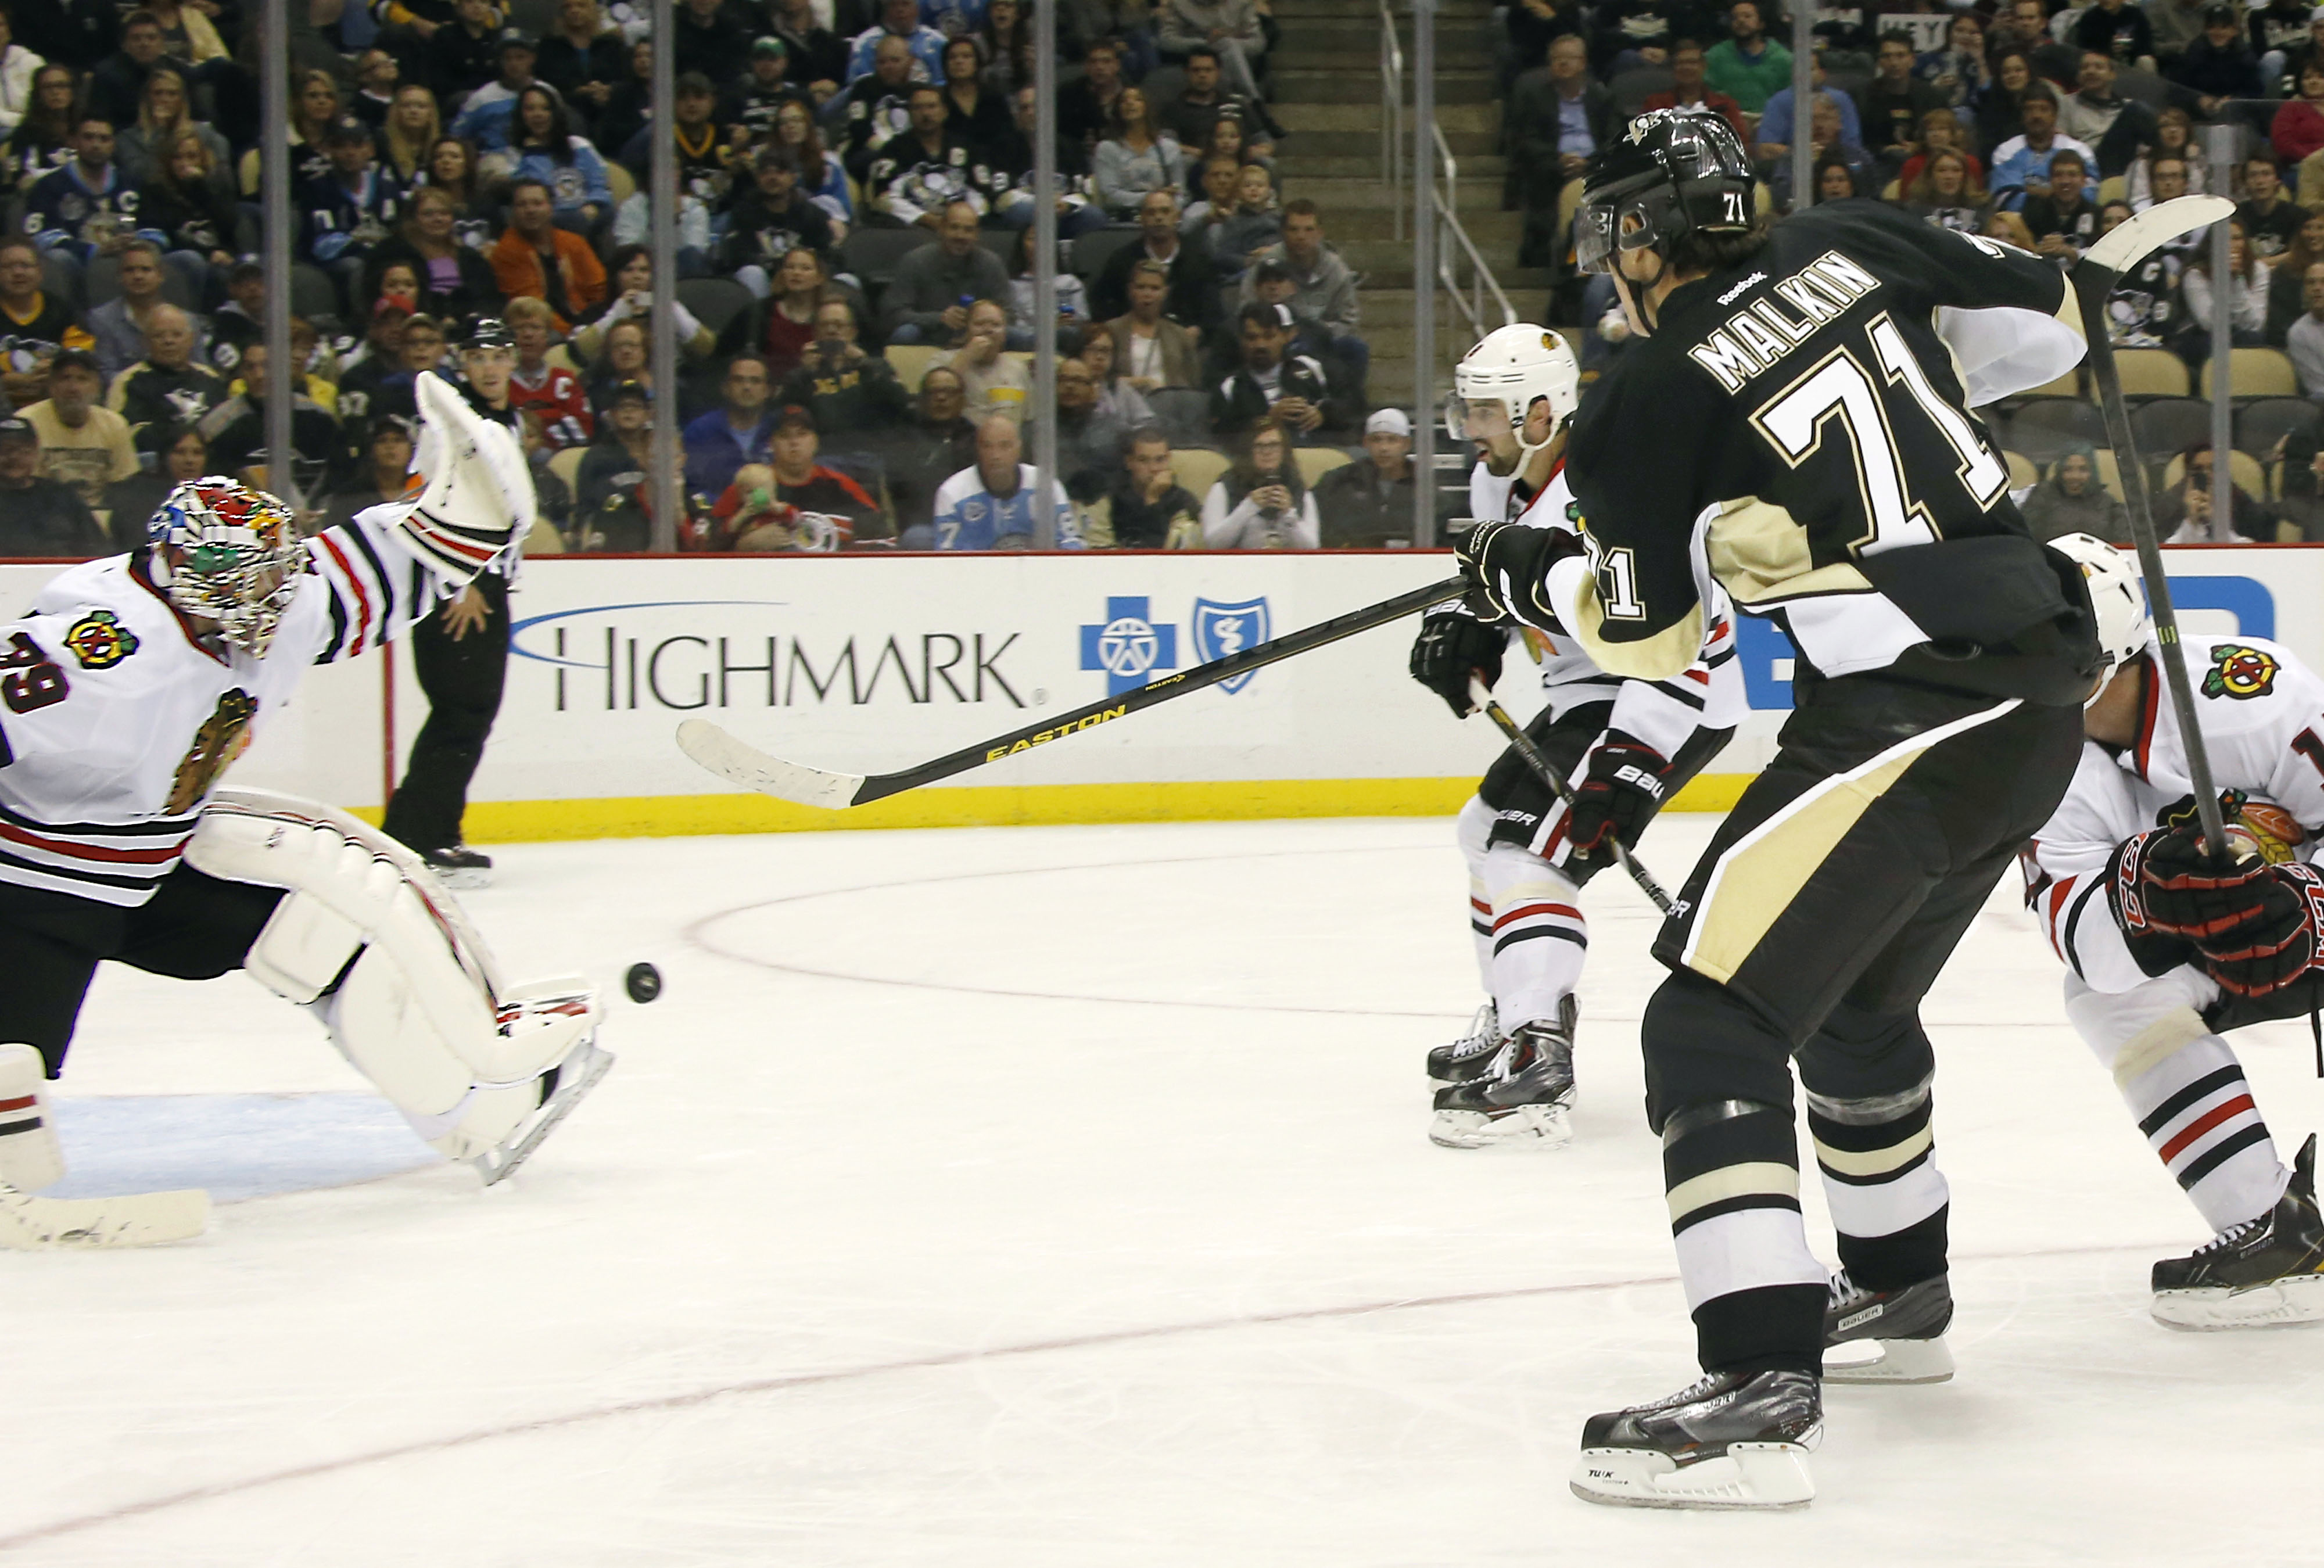 Pittsburgh Penguins' Evgeni Malkin (71), of Russia, has his shot stopped by Chicago Blackhawks goalie Nikolai Khabibulin (39), of Russia, in the second period of an NHL preseason hockey game on Monday, Sept. 23, 2013, in Pittsburgh